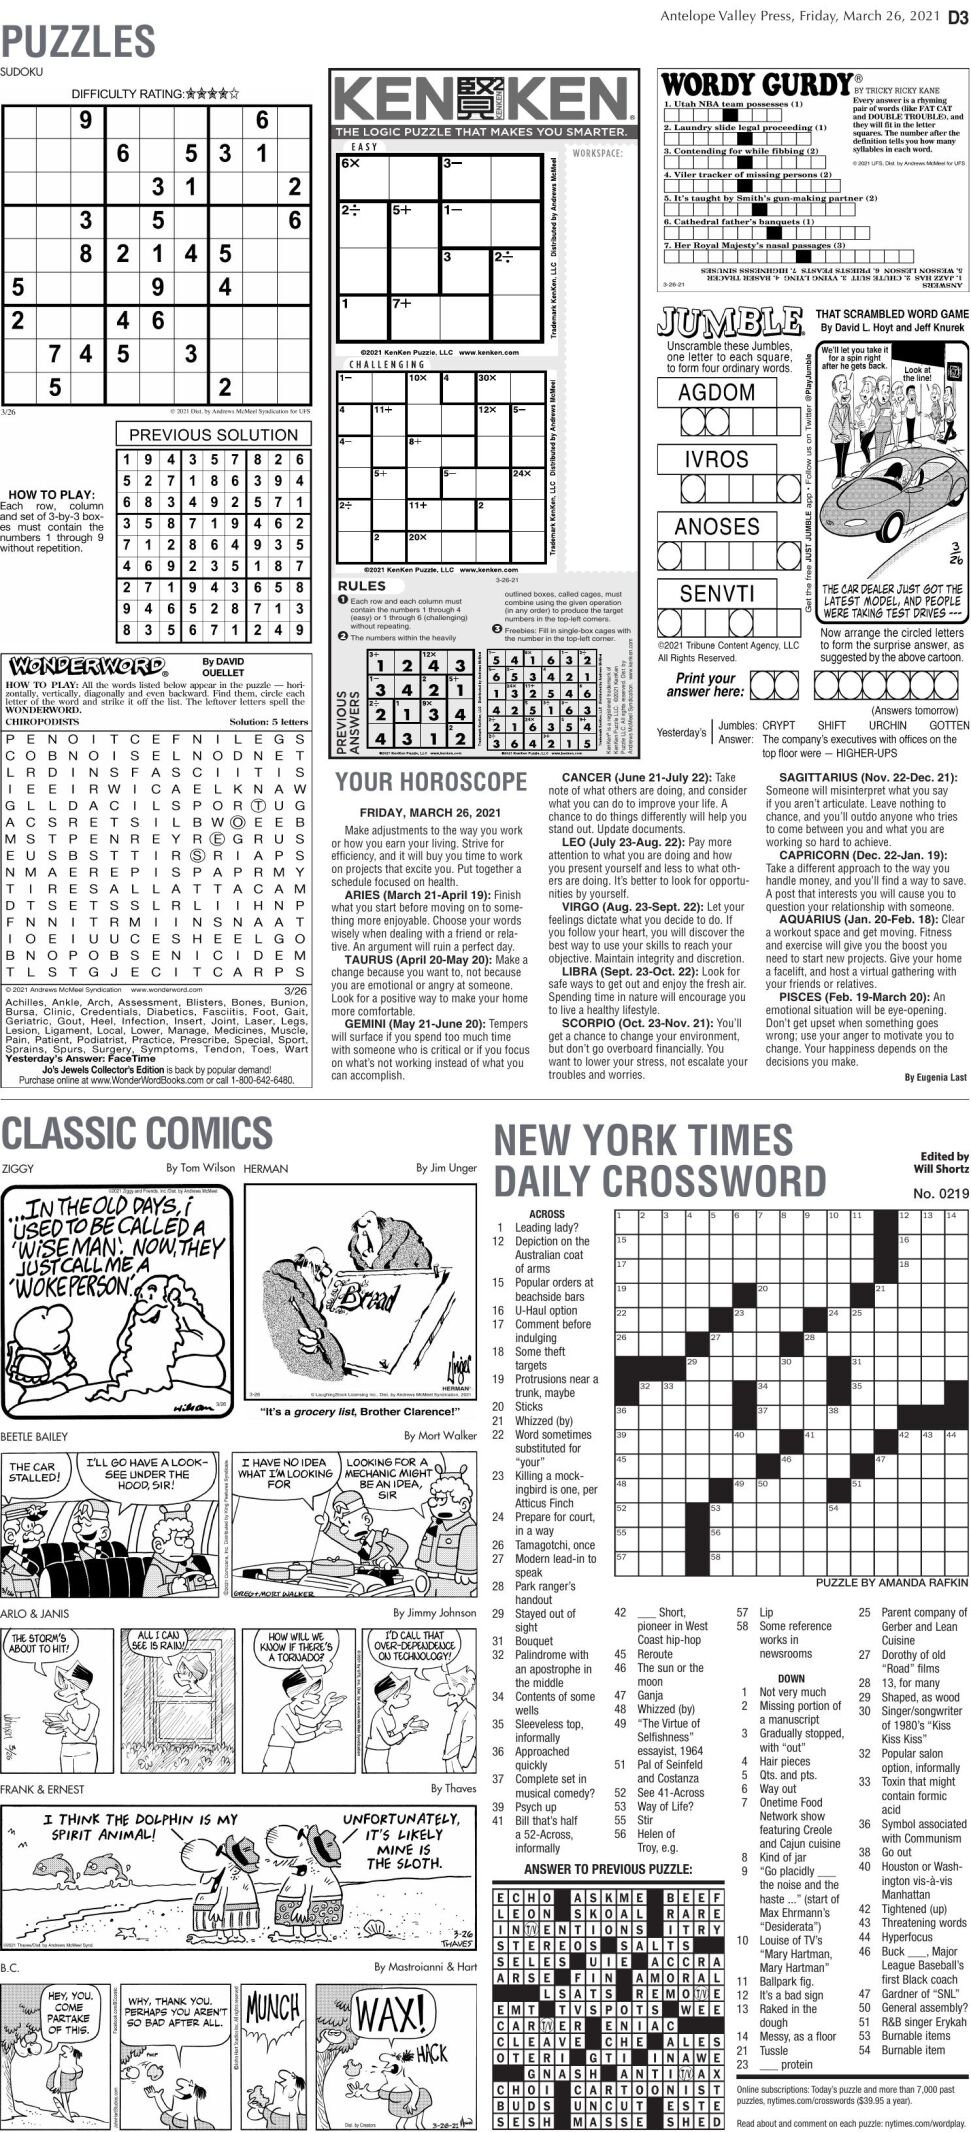 Puzzles, March 26, 2021